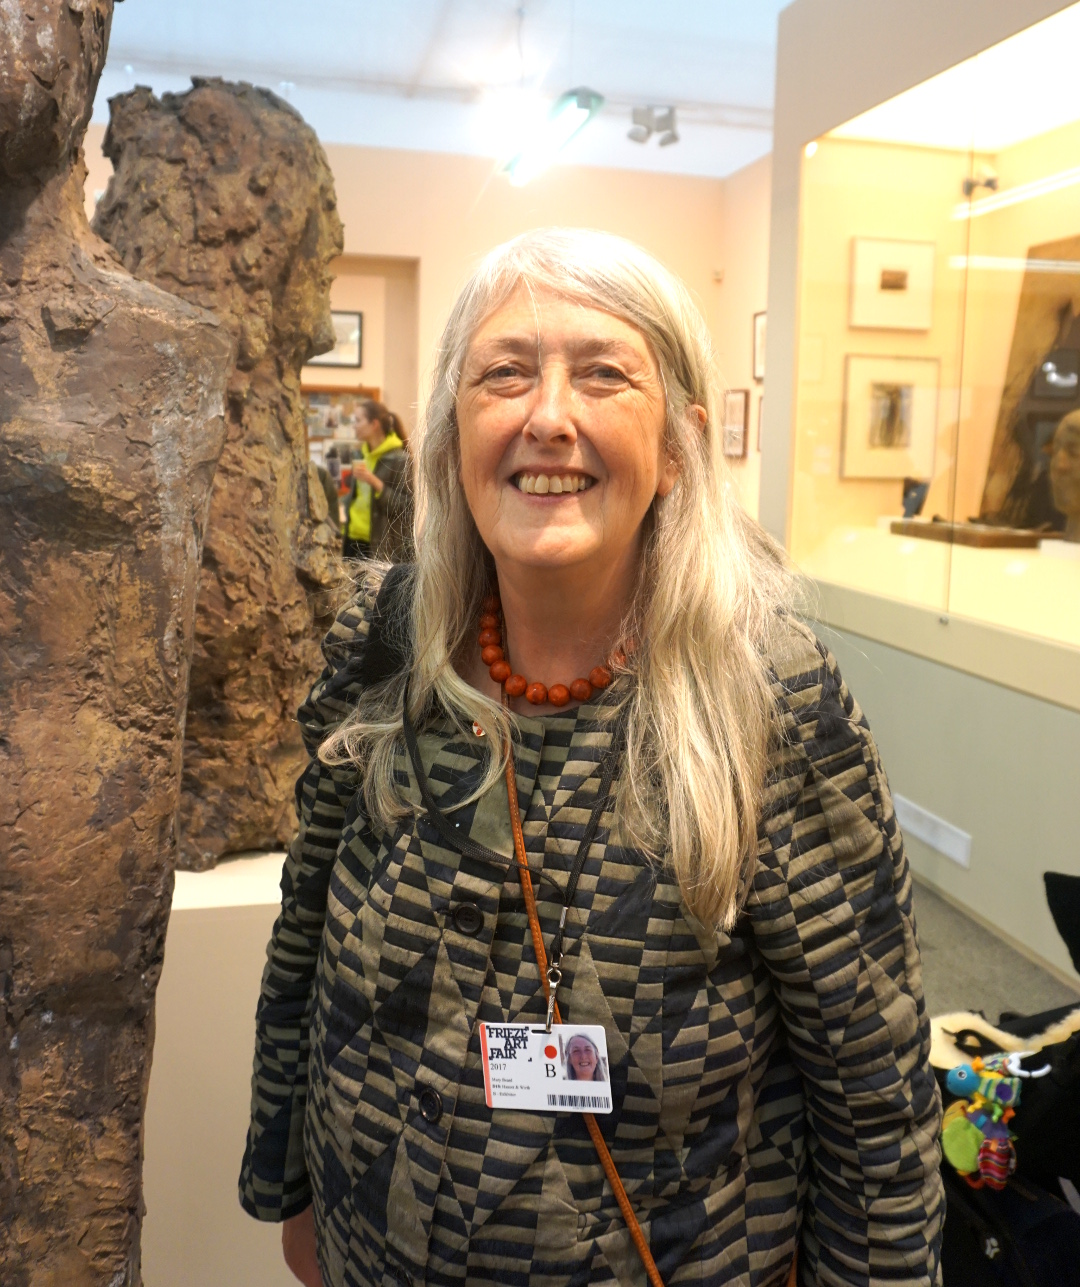 Mary Beard talks us through her 2017 Frieze show